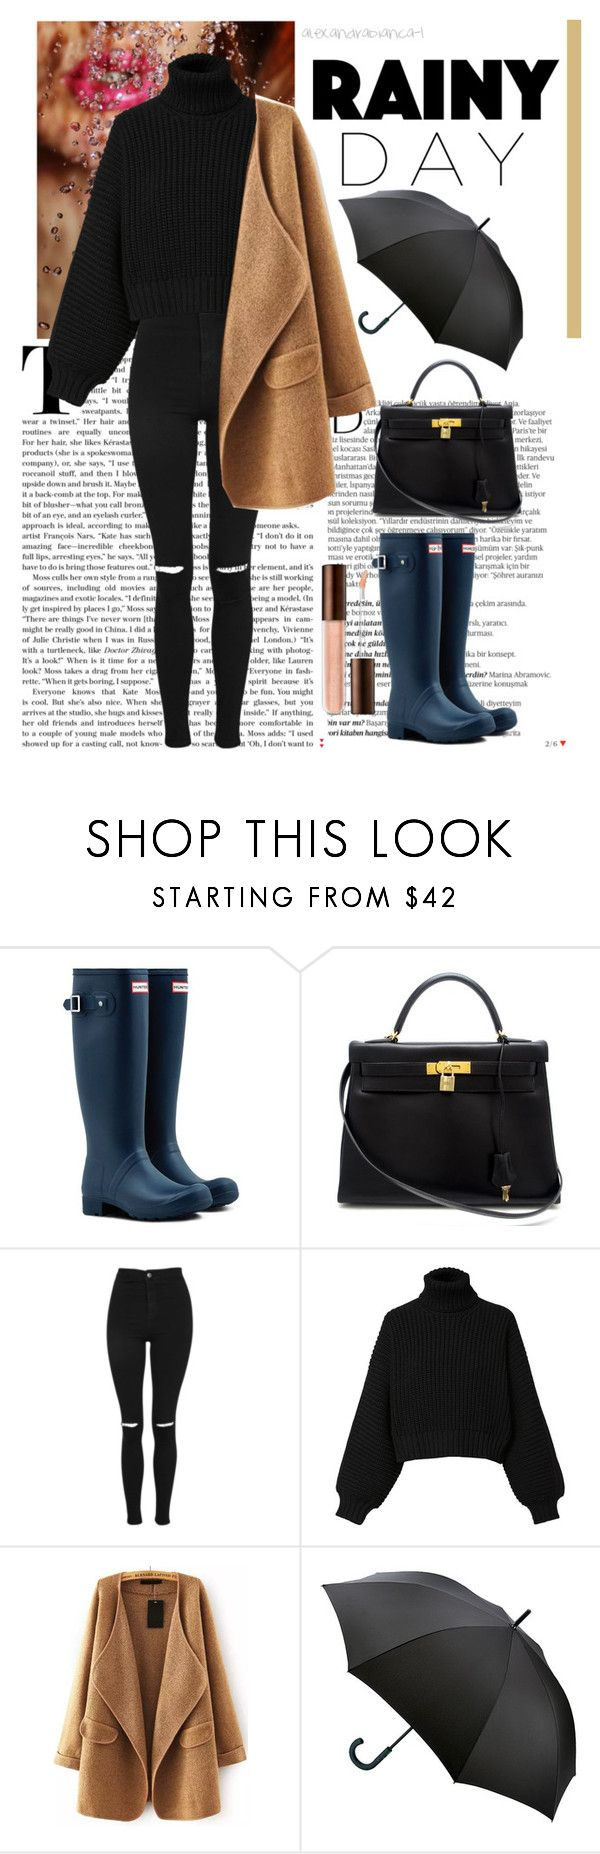 """Rainy day outfit-contest"" by alexandrabianca-1 on Polyvore featuring Balmain, Hunter, Hermès, Topshop, Diesel, WithChic and Fulton"